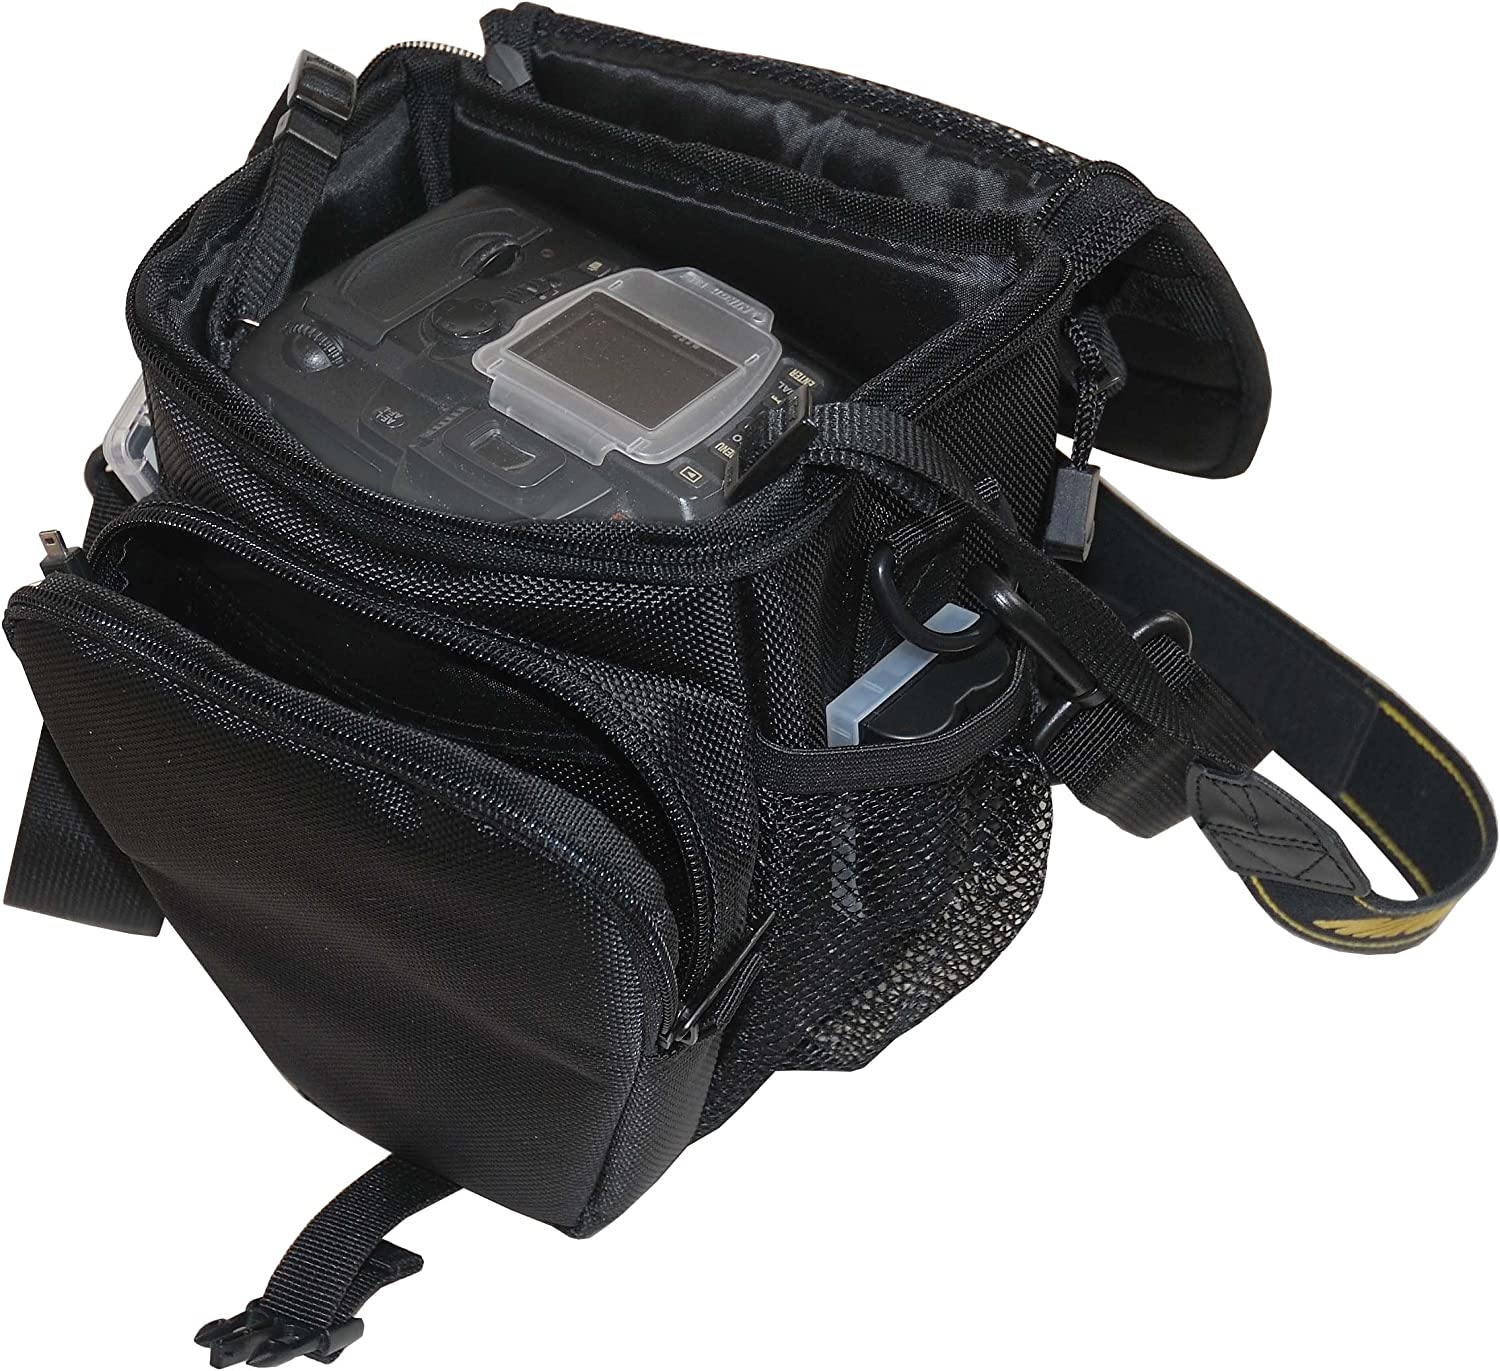 Gem Easy Access Camera Case for Sony Cyber-shot DSC-RX10 IV